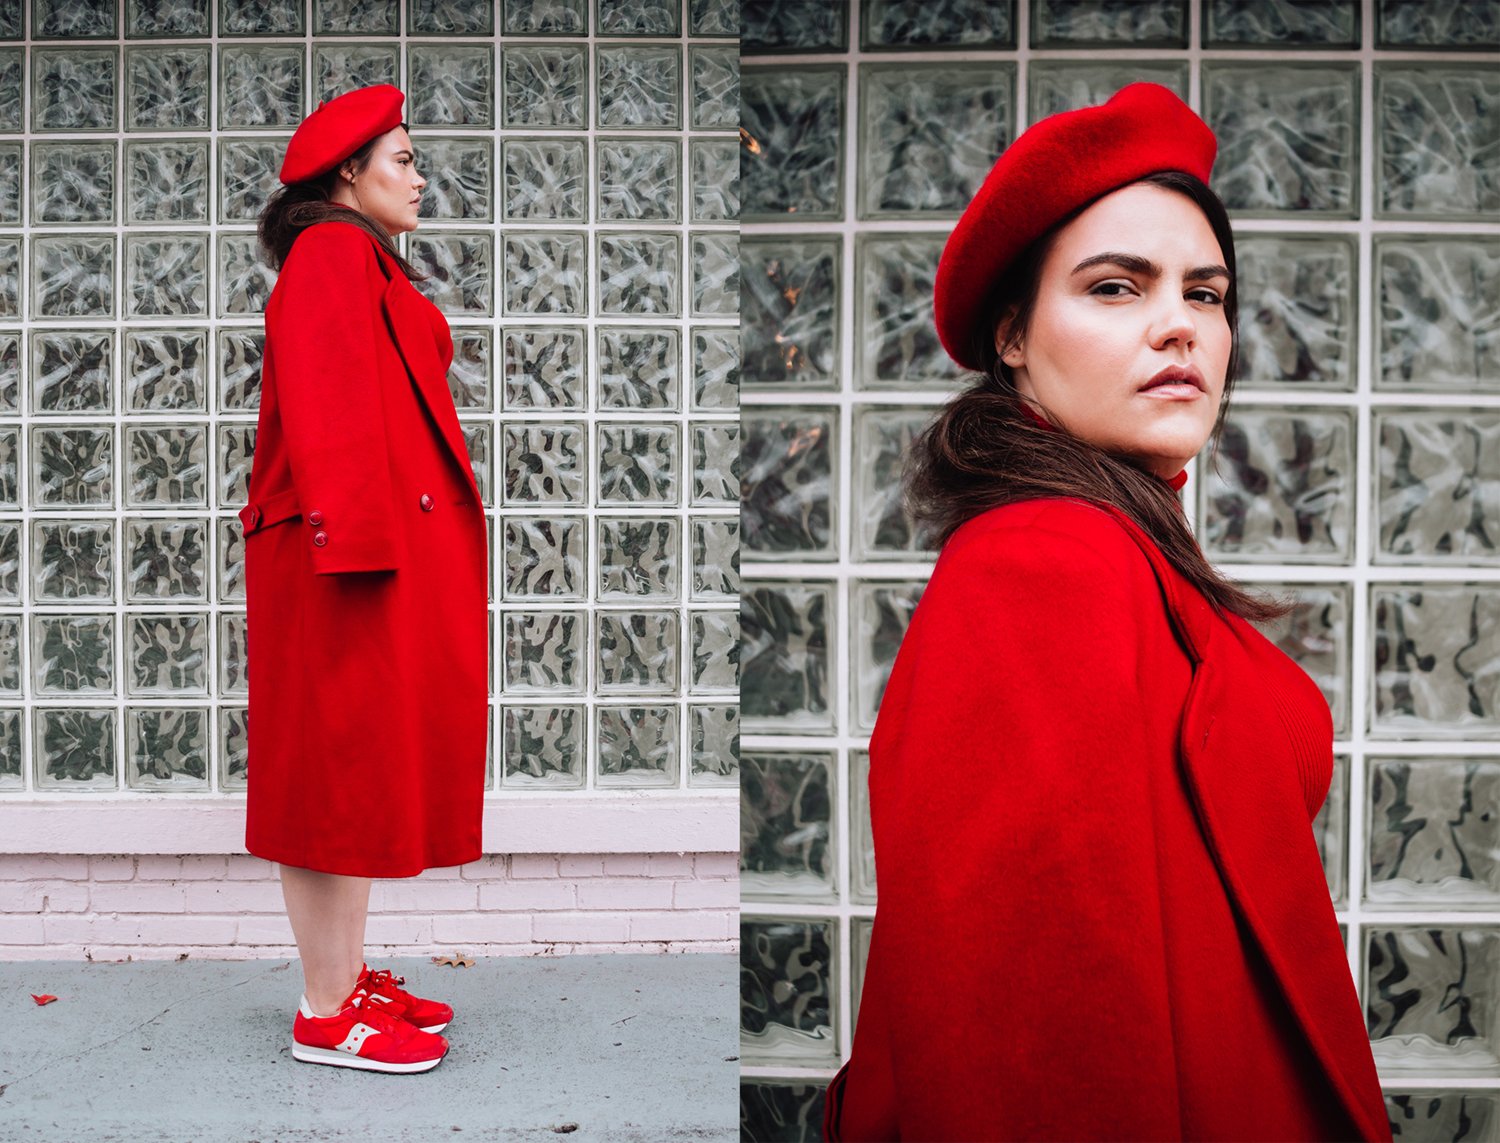 Red editorial_atl photographer1.jpg